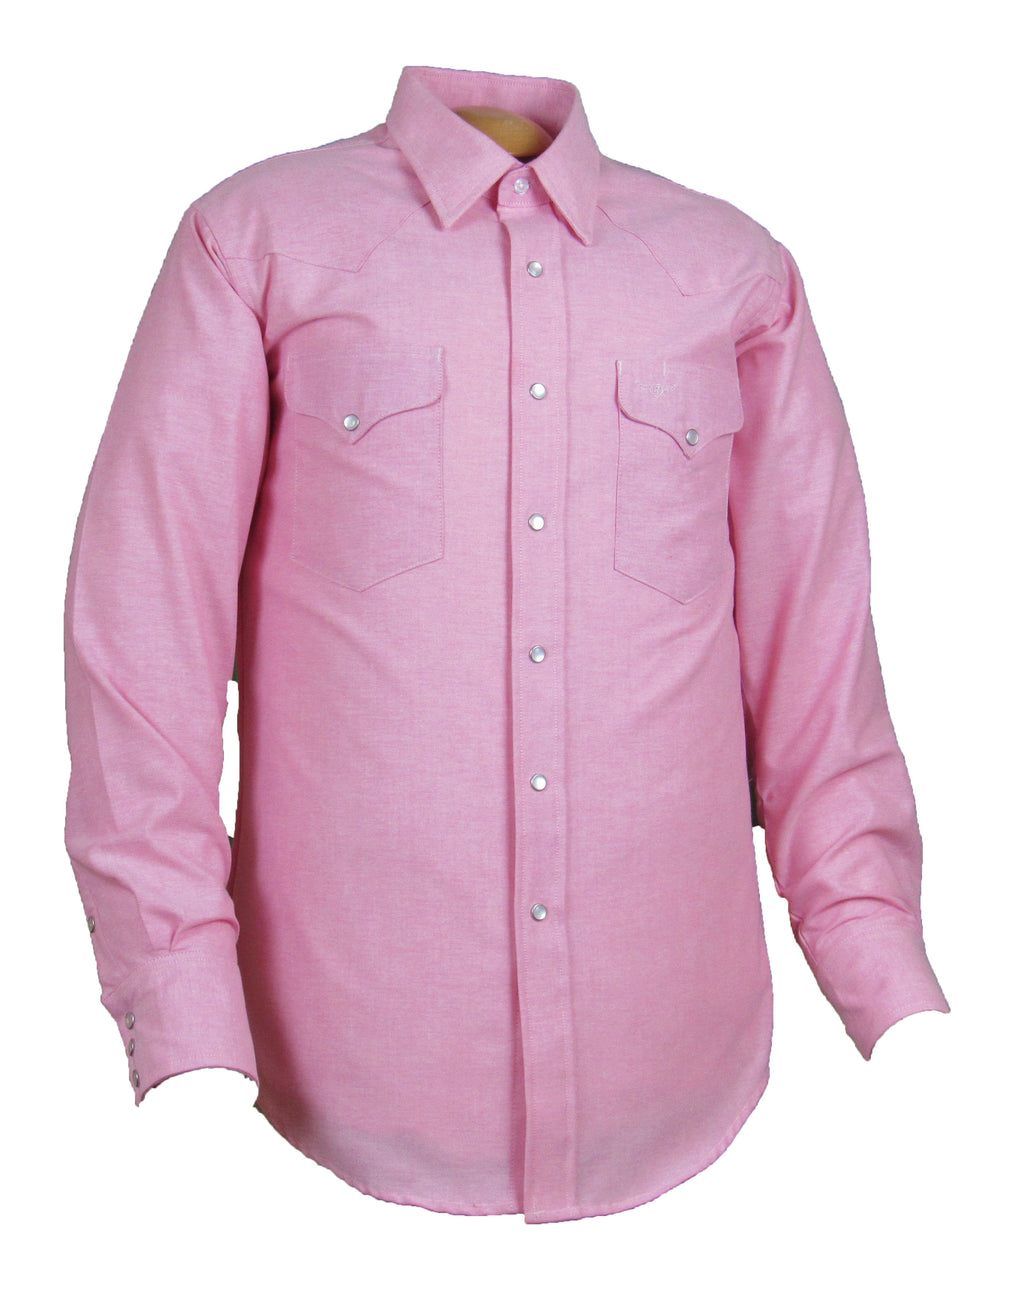 Flying R Ranchwear - Solid Oxford - Pink - Snaps